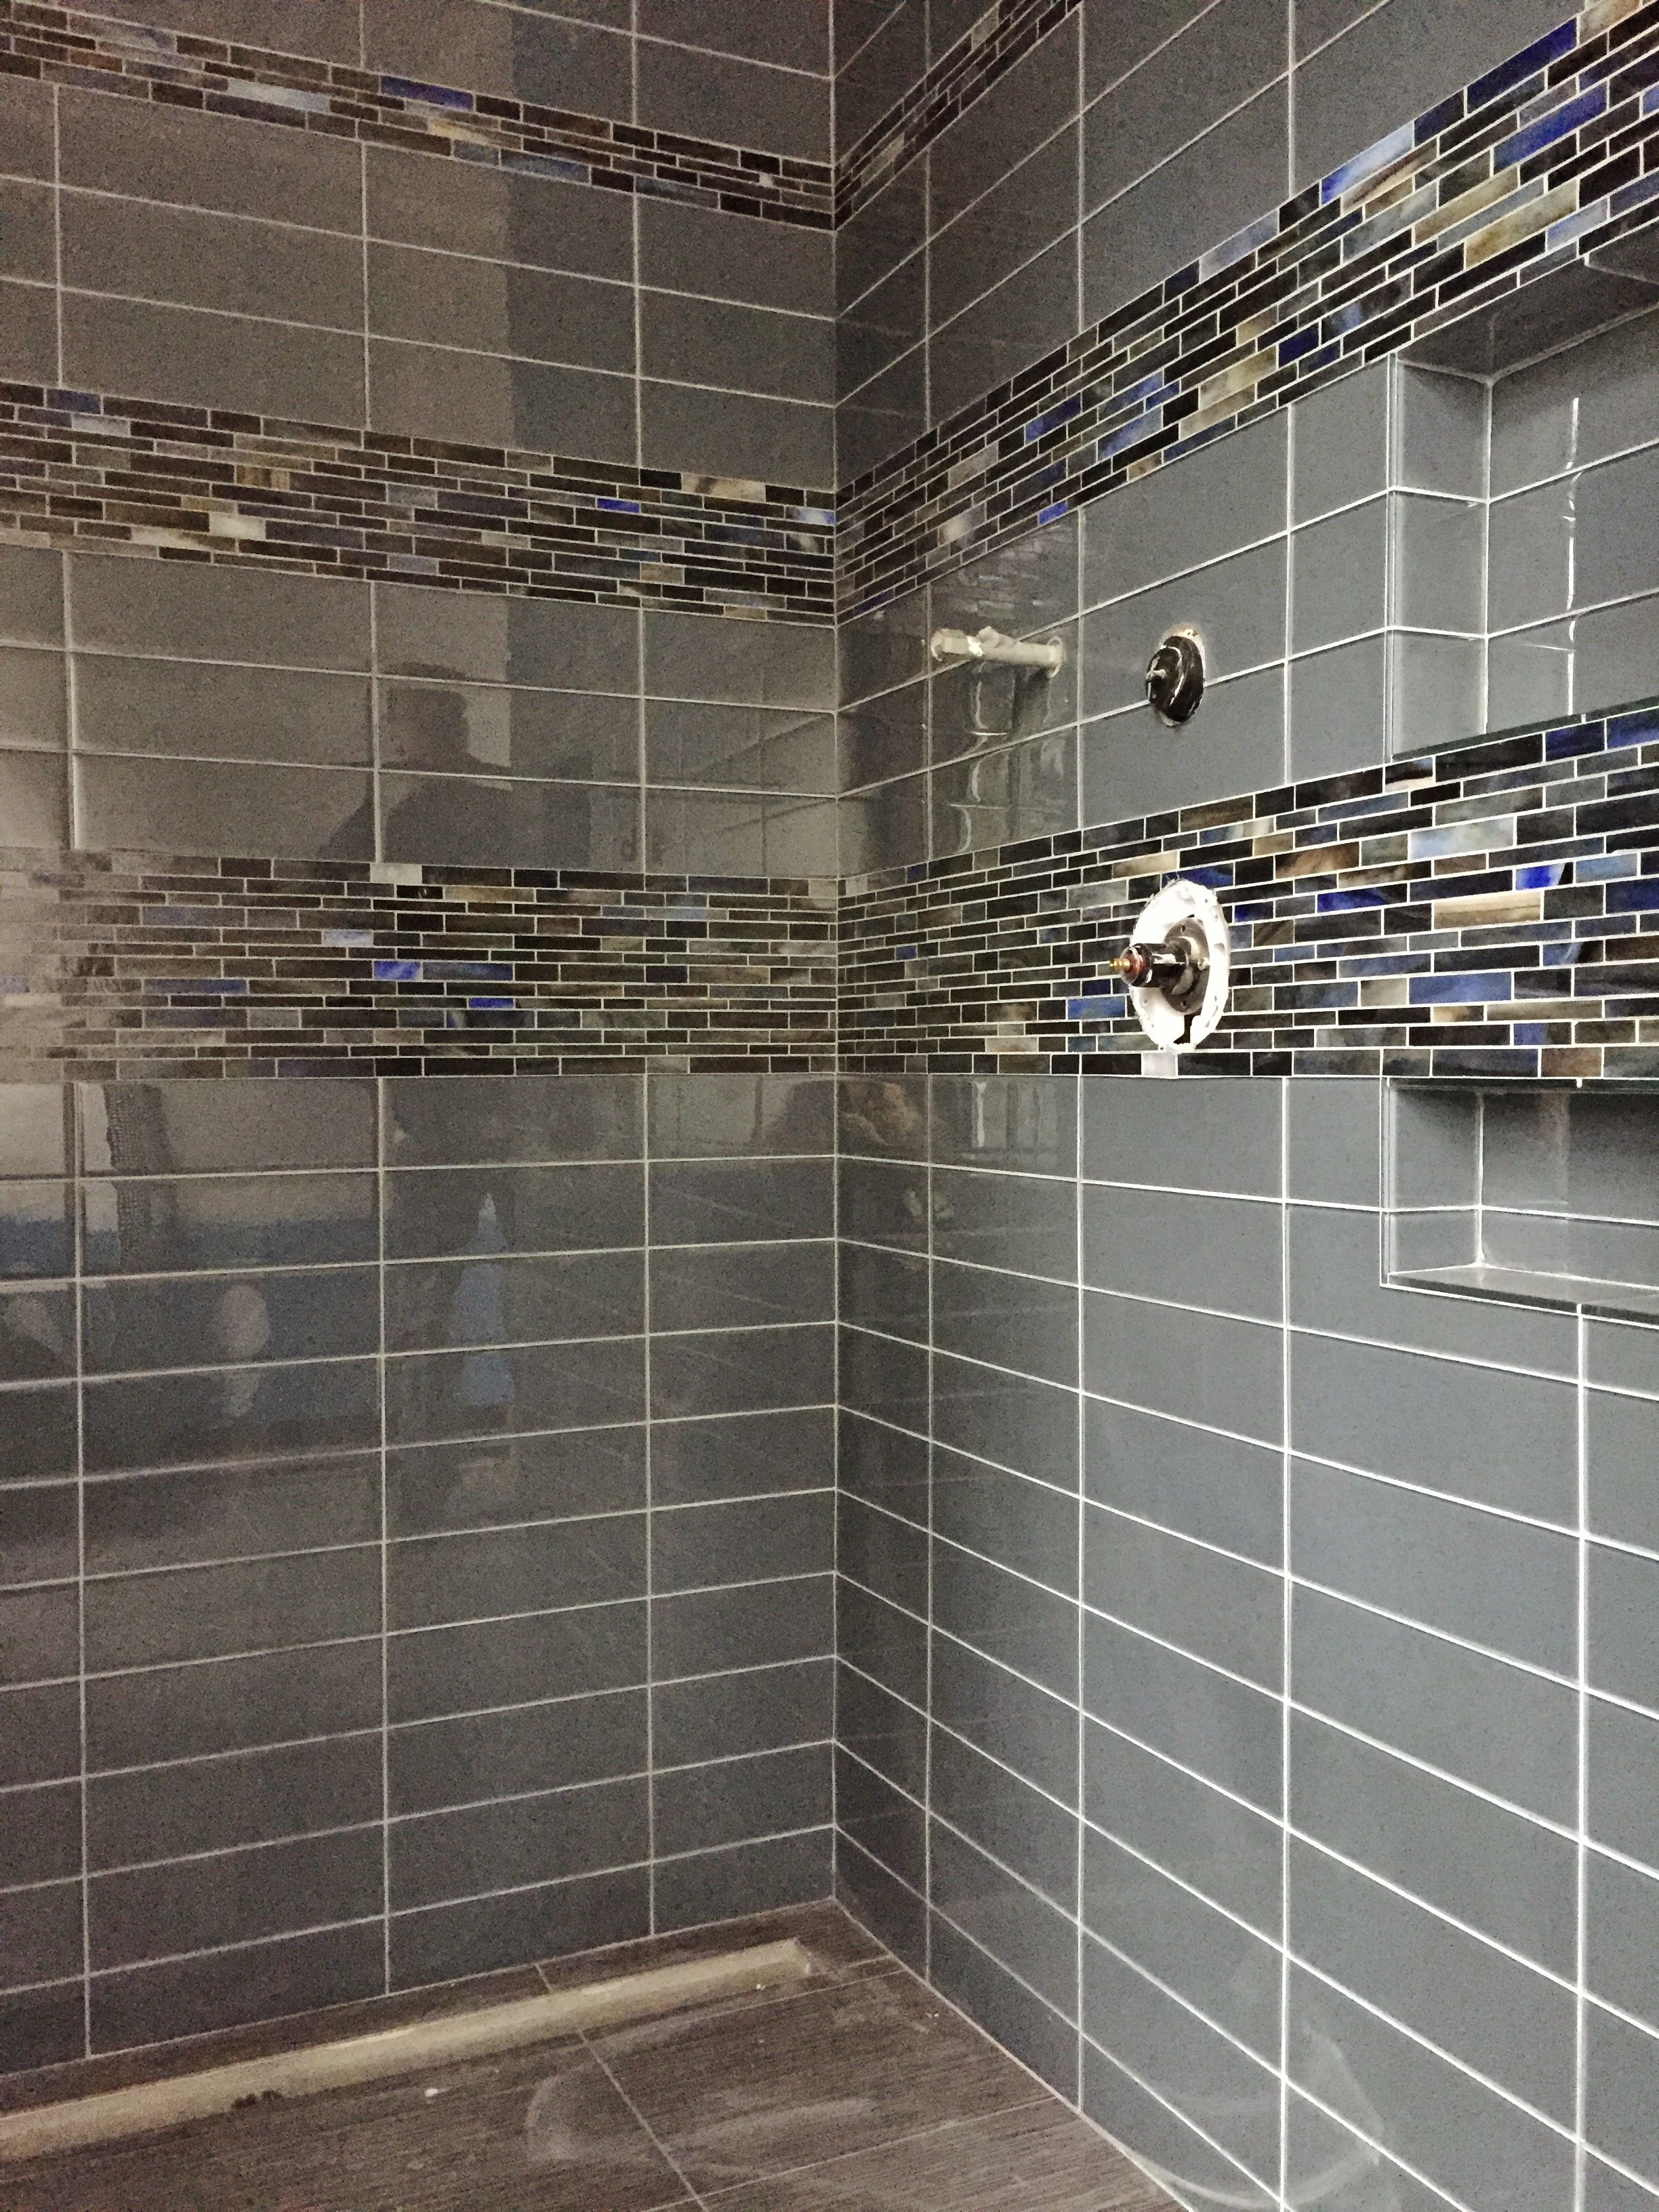 4x12 Glass Tile With Glass Accent Band Around Shower Linear Drain